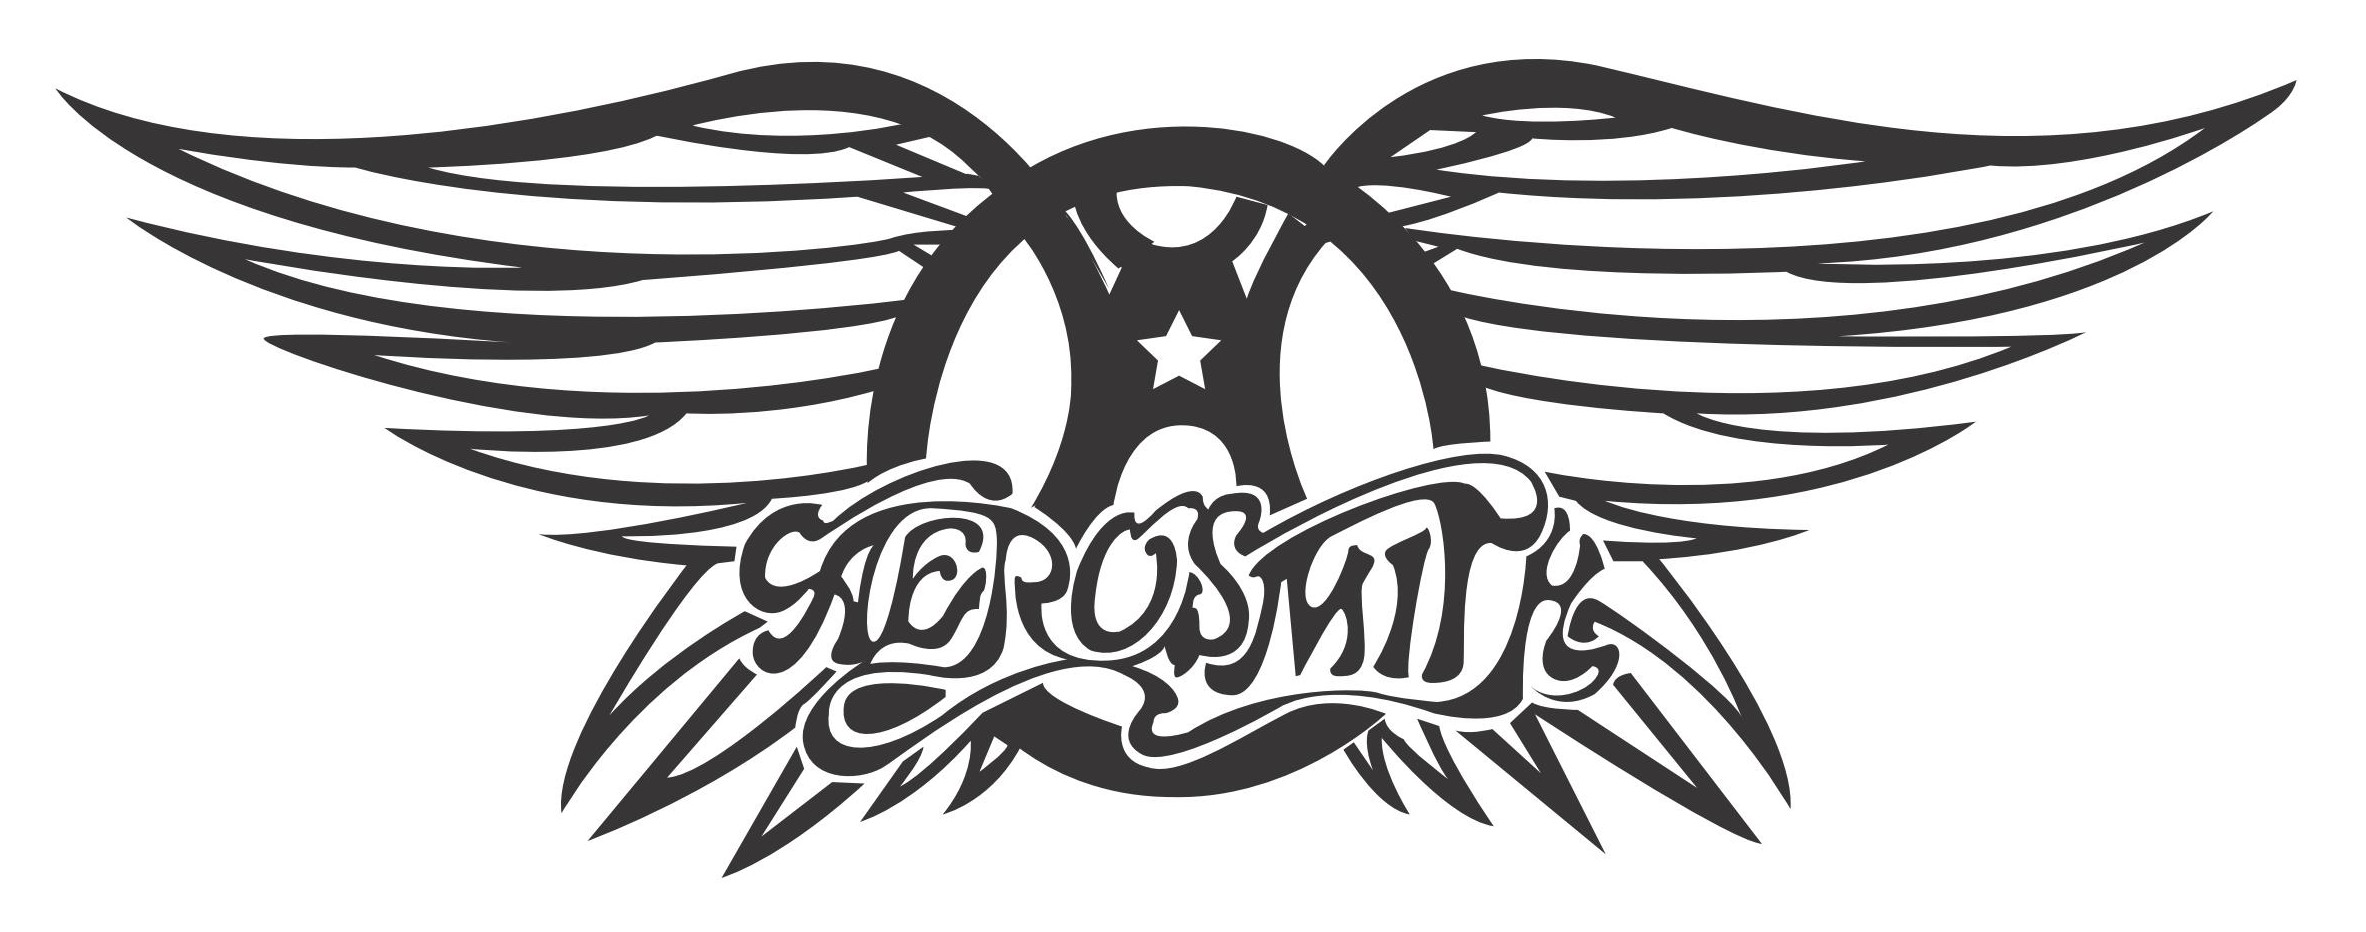 Aerosmith Logo [EPS File] - Aerosmith Music Vector PNG